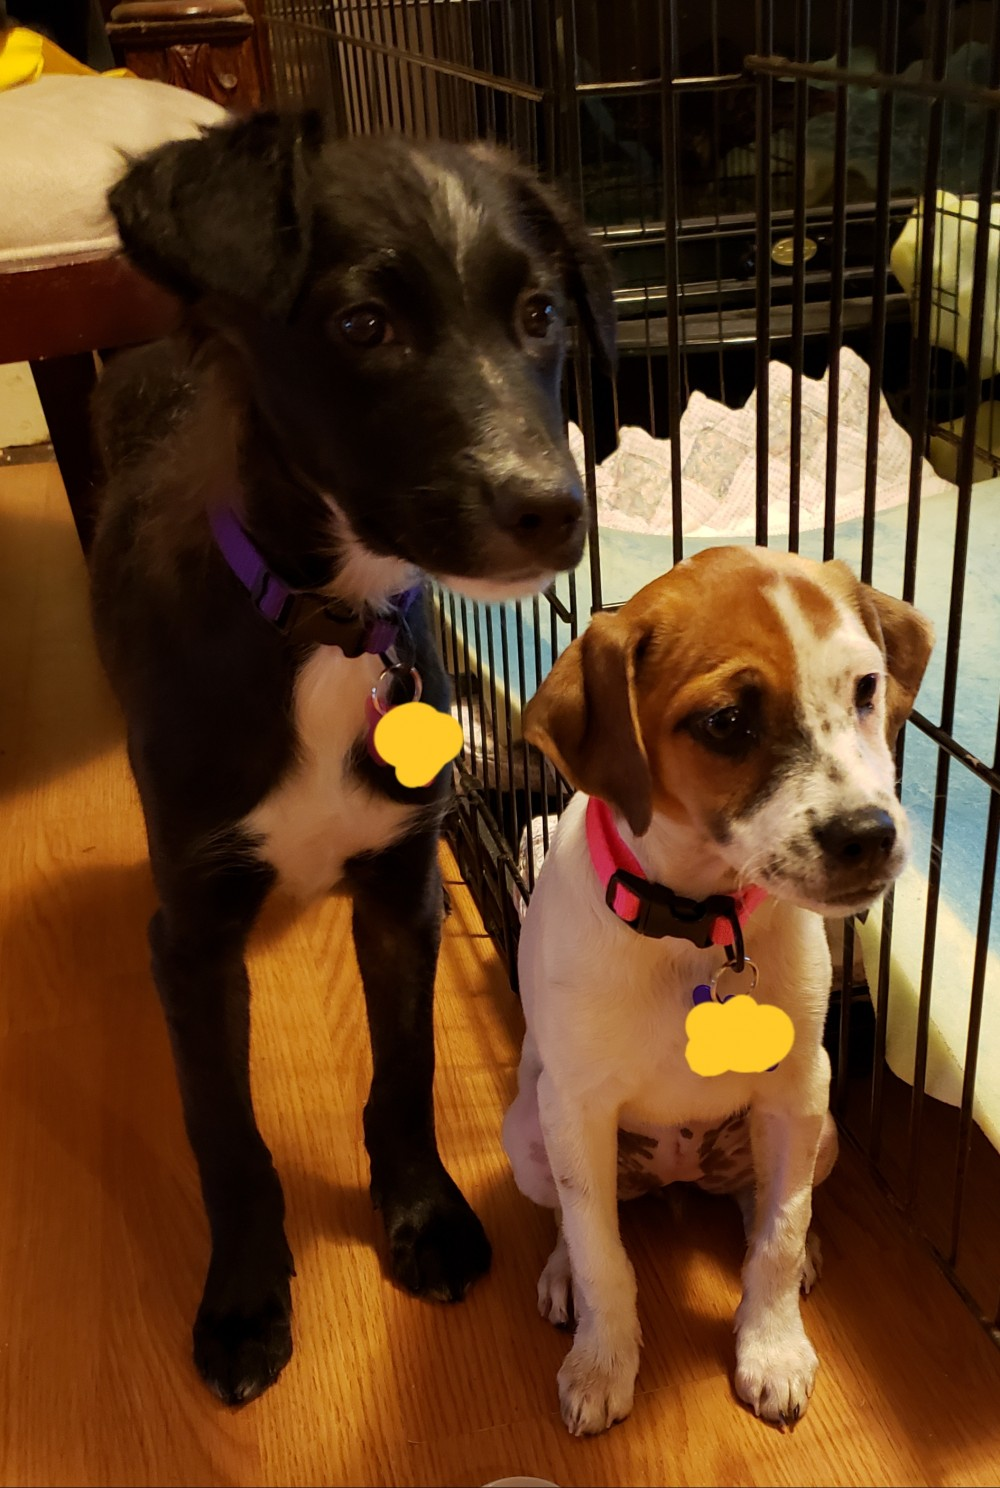 179f3ae84 Holly and Tammy were lucky enough to be adopted together. They found their  wonderful new home through the Sterling Animal Shelter in Sterling